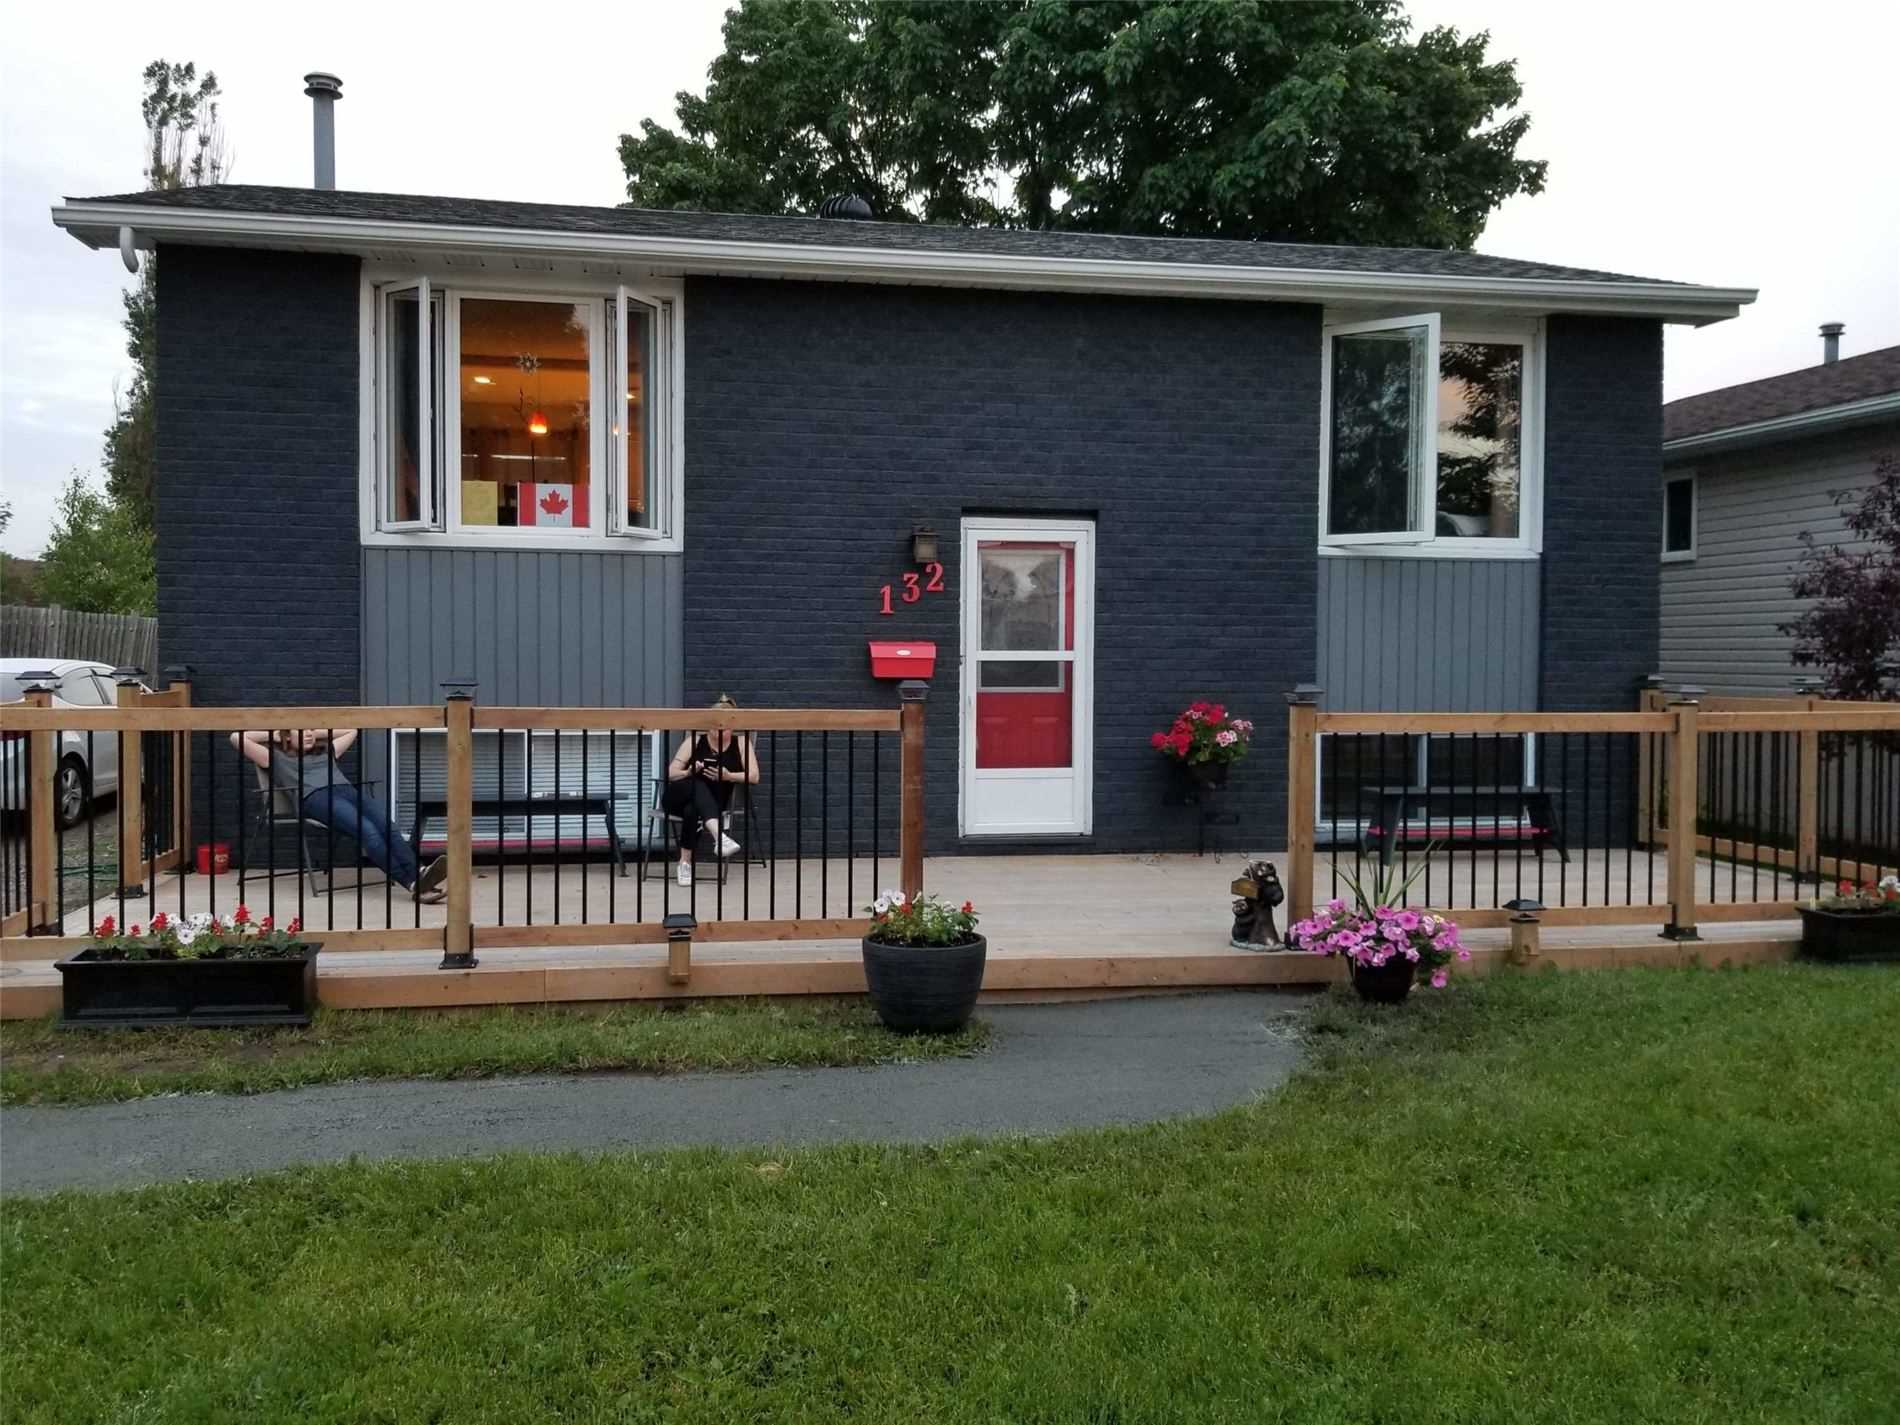 132 Murphy St, Sault Ste Marie, Ontario P6A5Y2, 3 Bedrooms Bedrooms, 5 Rooms Rooms,2 BathroomsBathrooms,Detached,For Sale,Murphy,X4750293